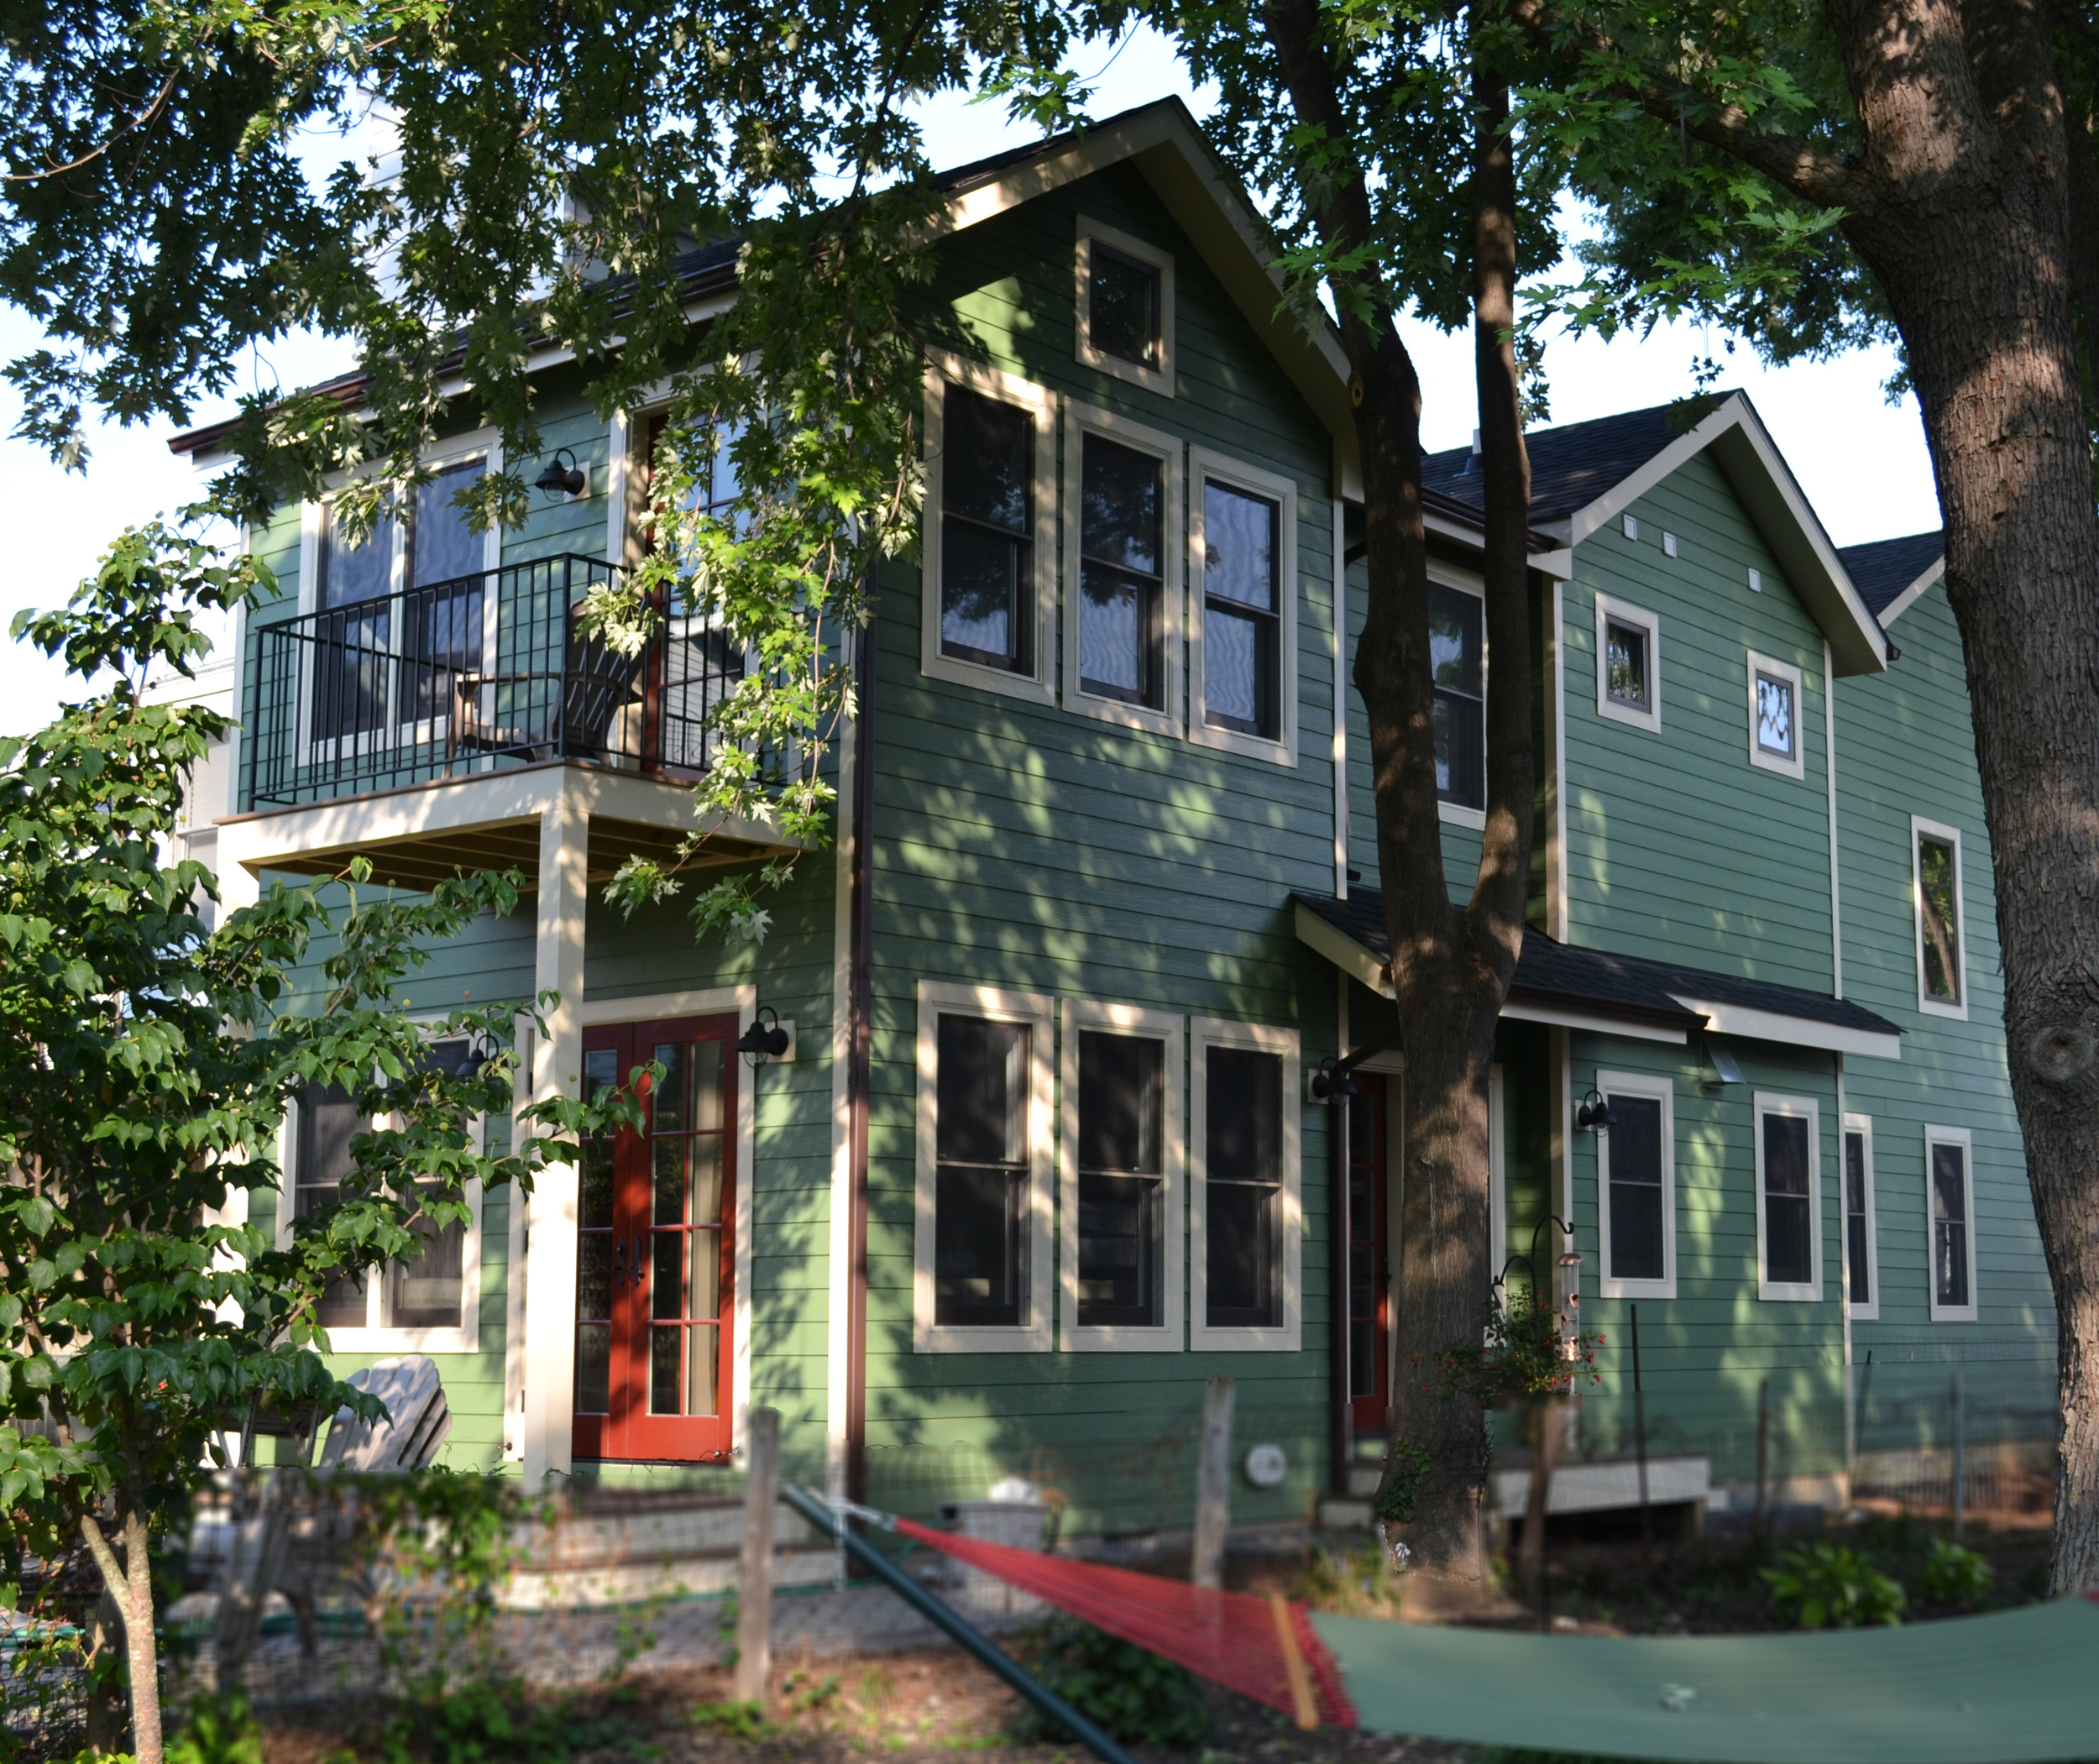 After - additions and renovations to the duplex adding interior program and bringing back to scale with its neighbor.